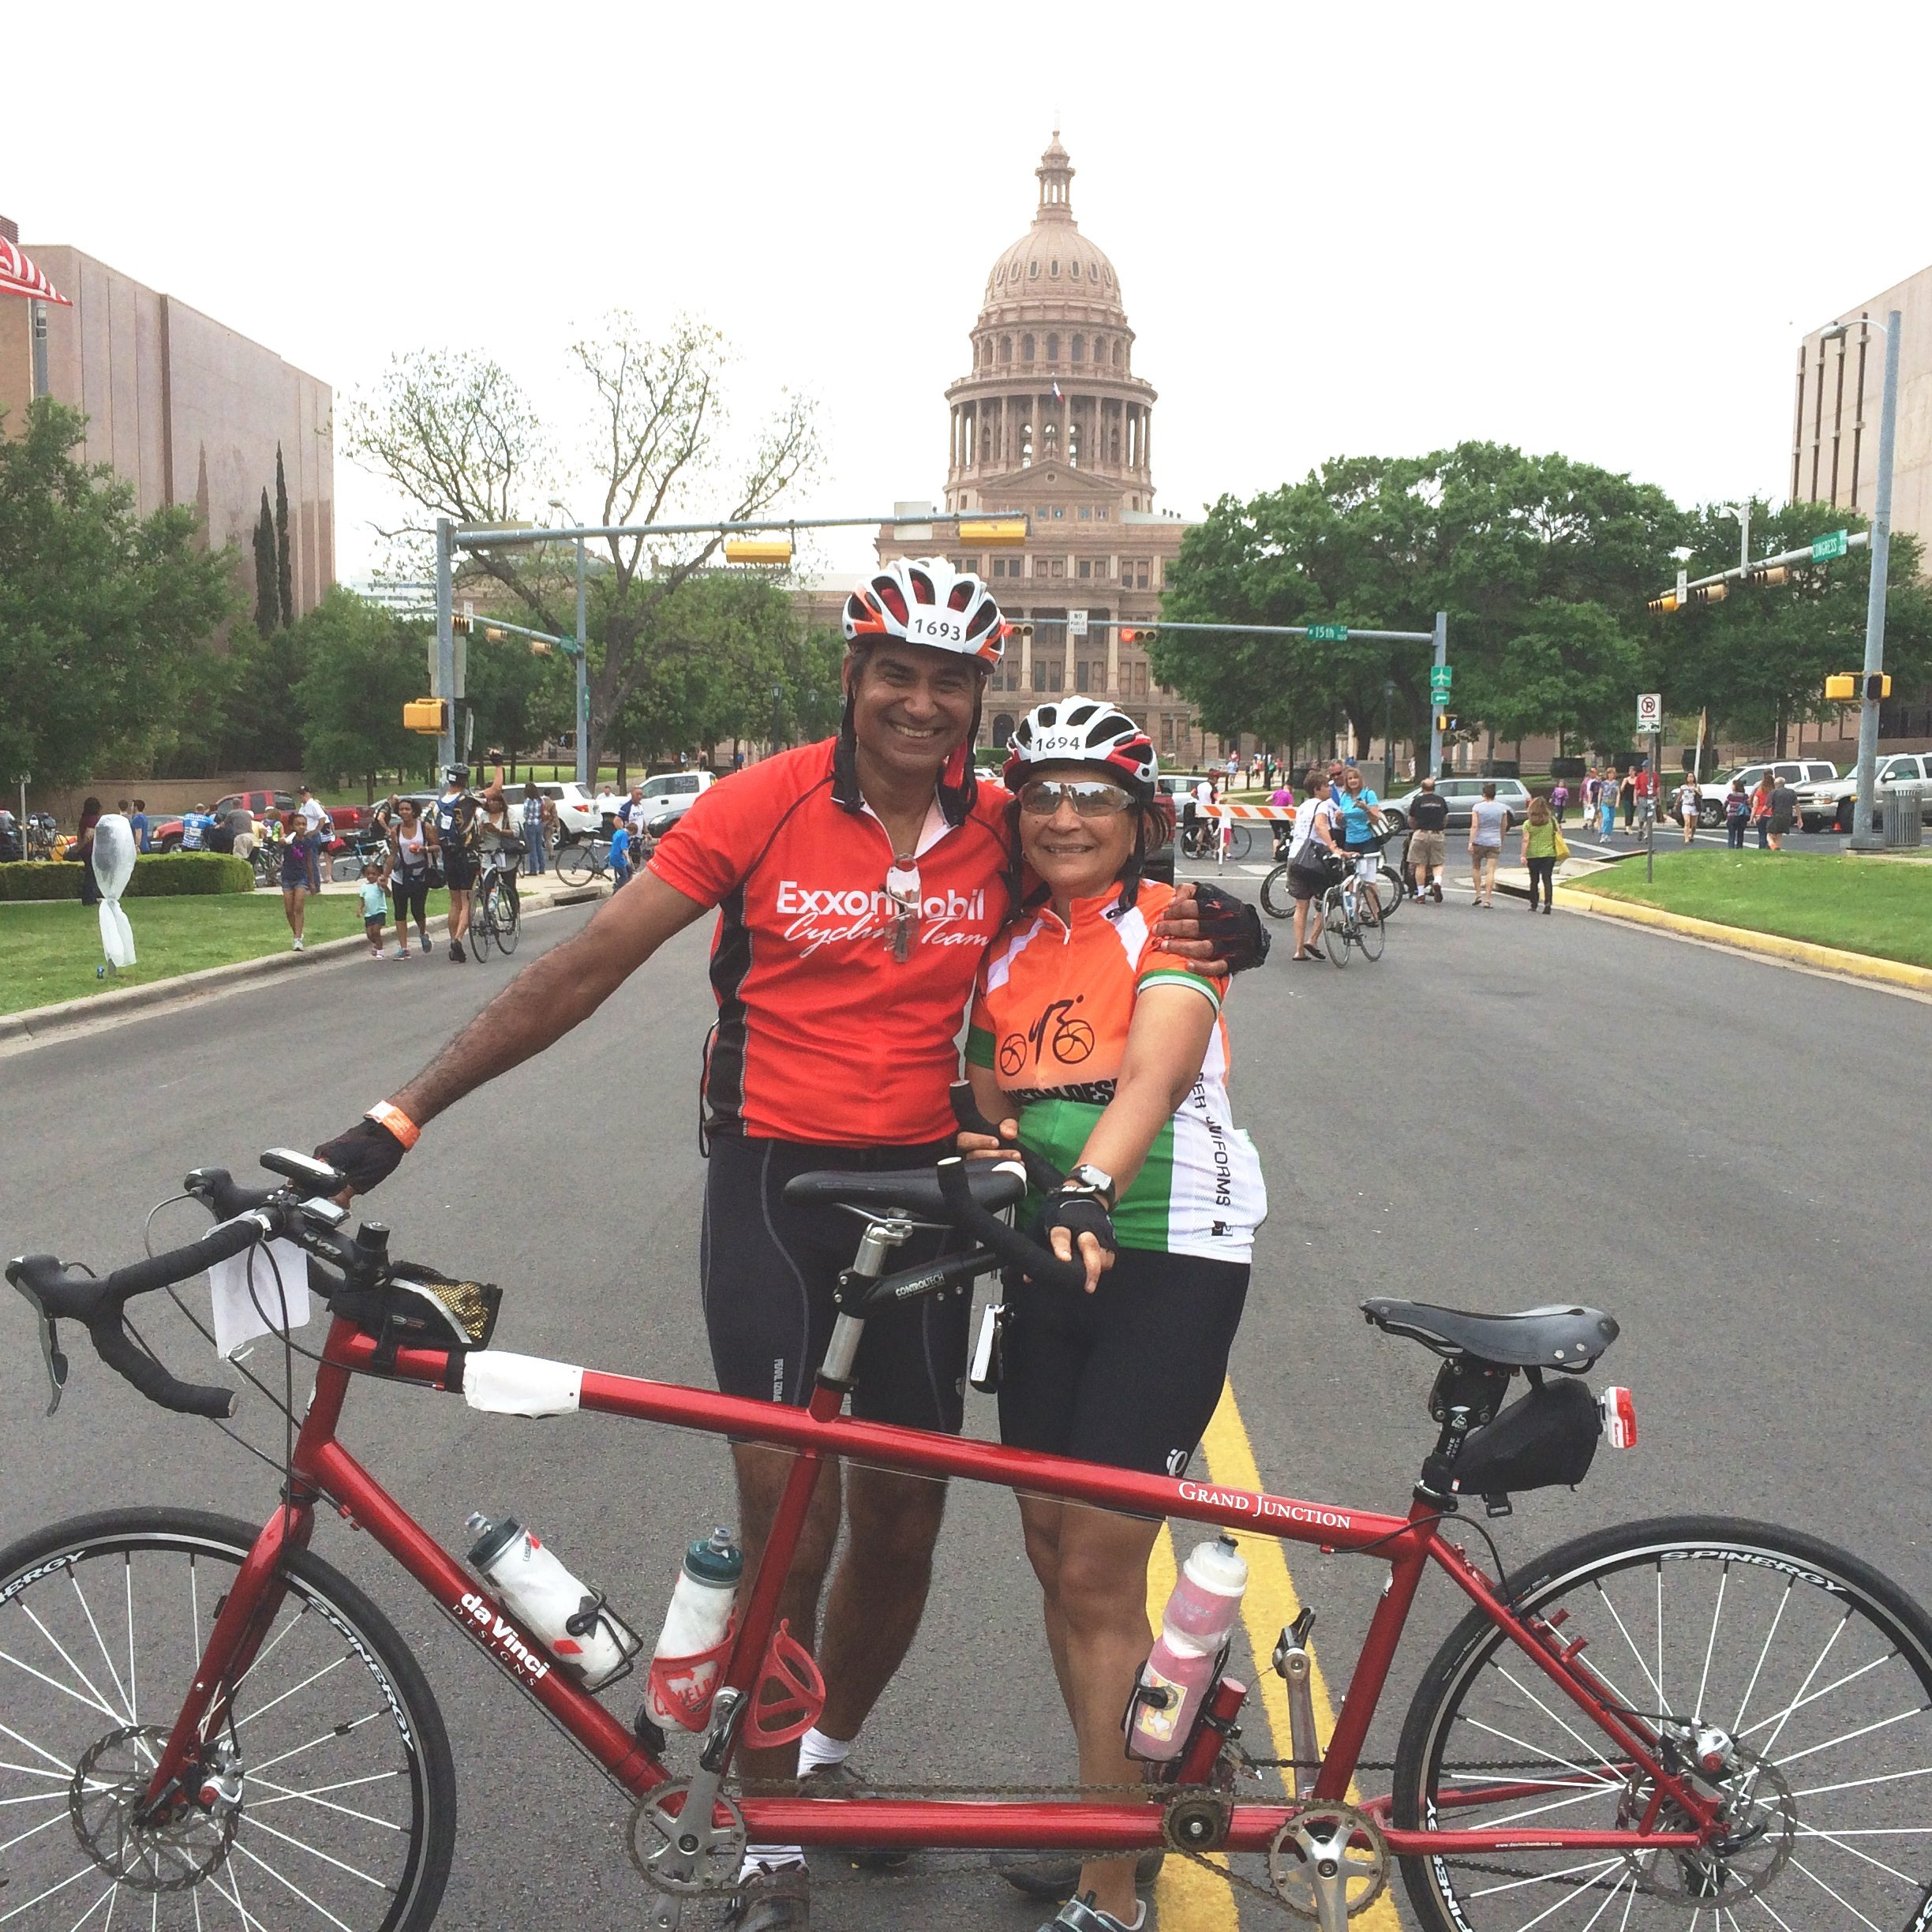 Sixteen years after completing MDS treatment, Rani Kabra rode more than 150 miles in the MS150 cycling race.